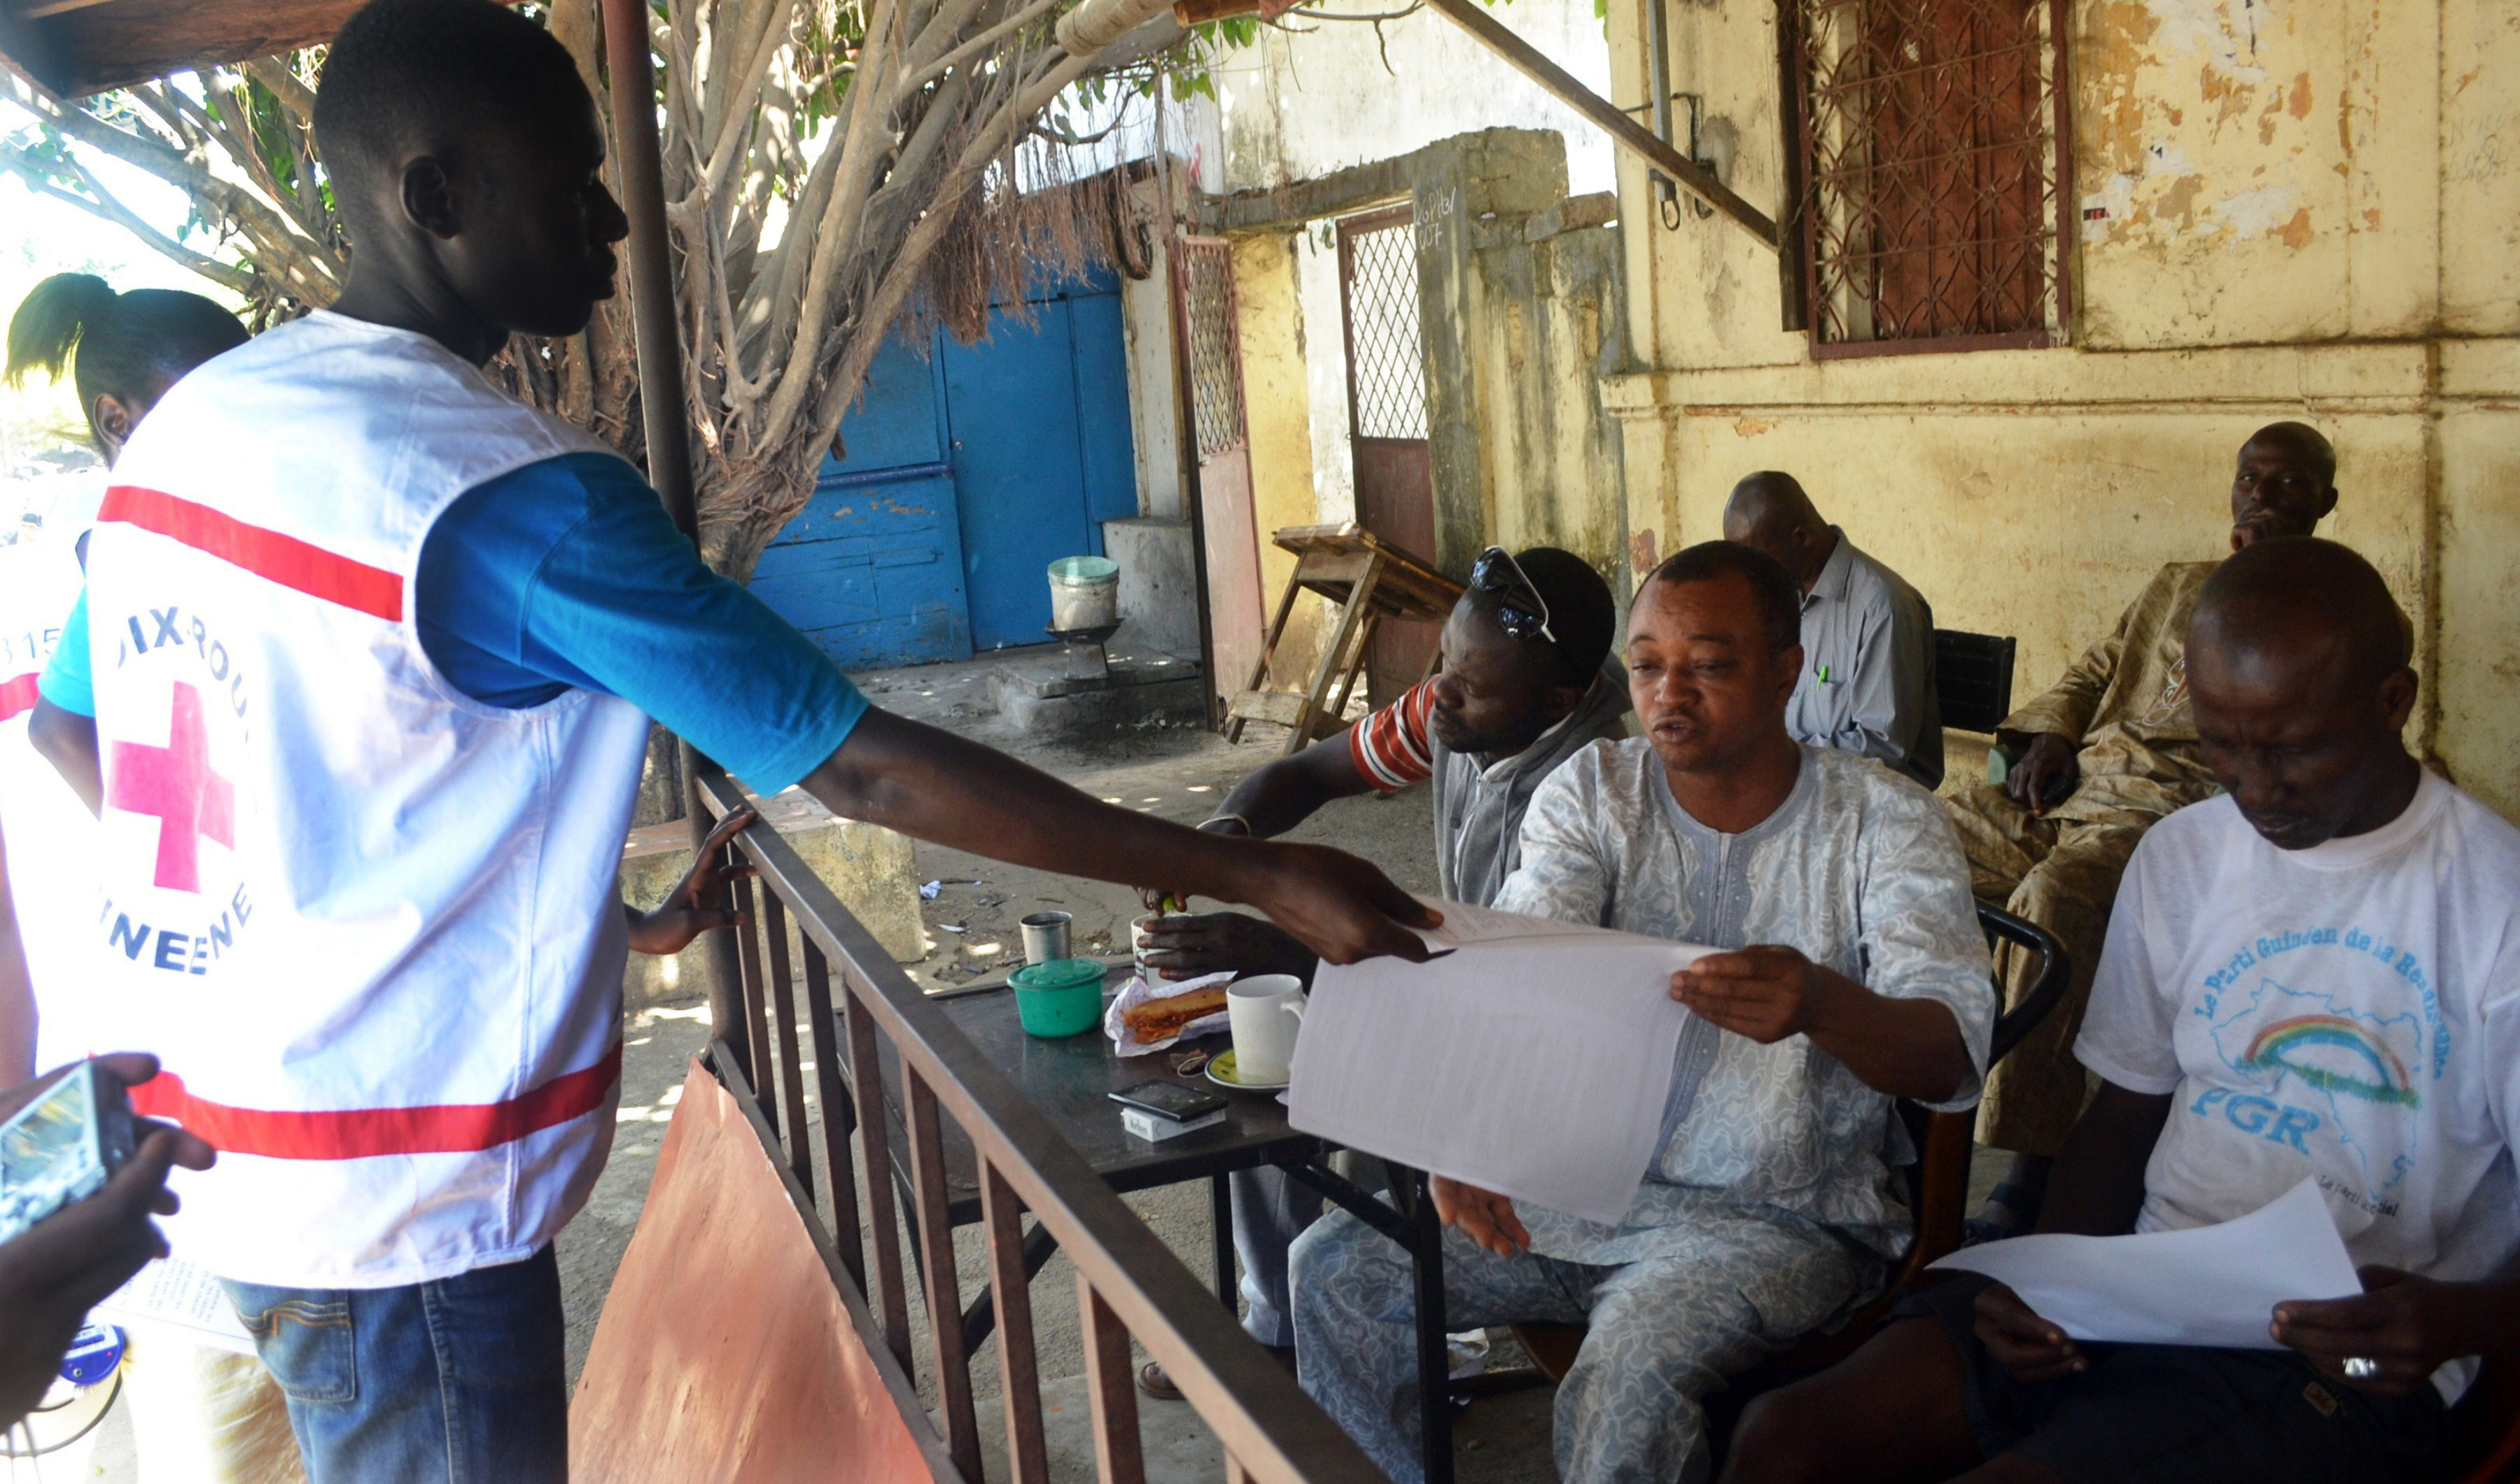 Members of the Guinean Red Cross distribute information leaflets during an awareness campaign on the Ebola virus on April 11, 2014 in Conakry, Guinea.